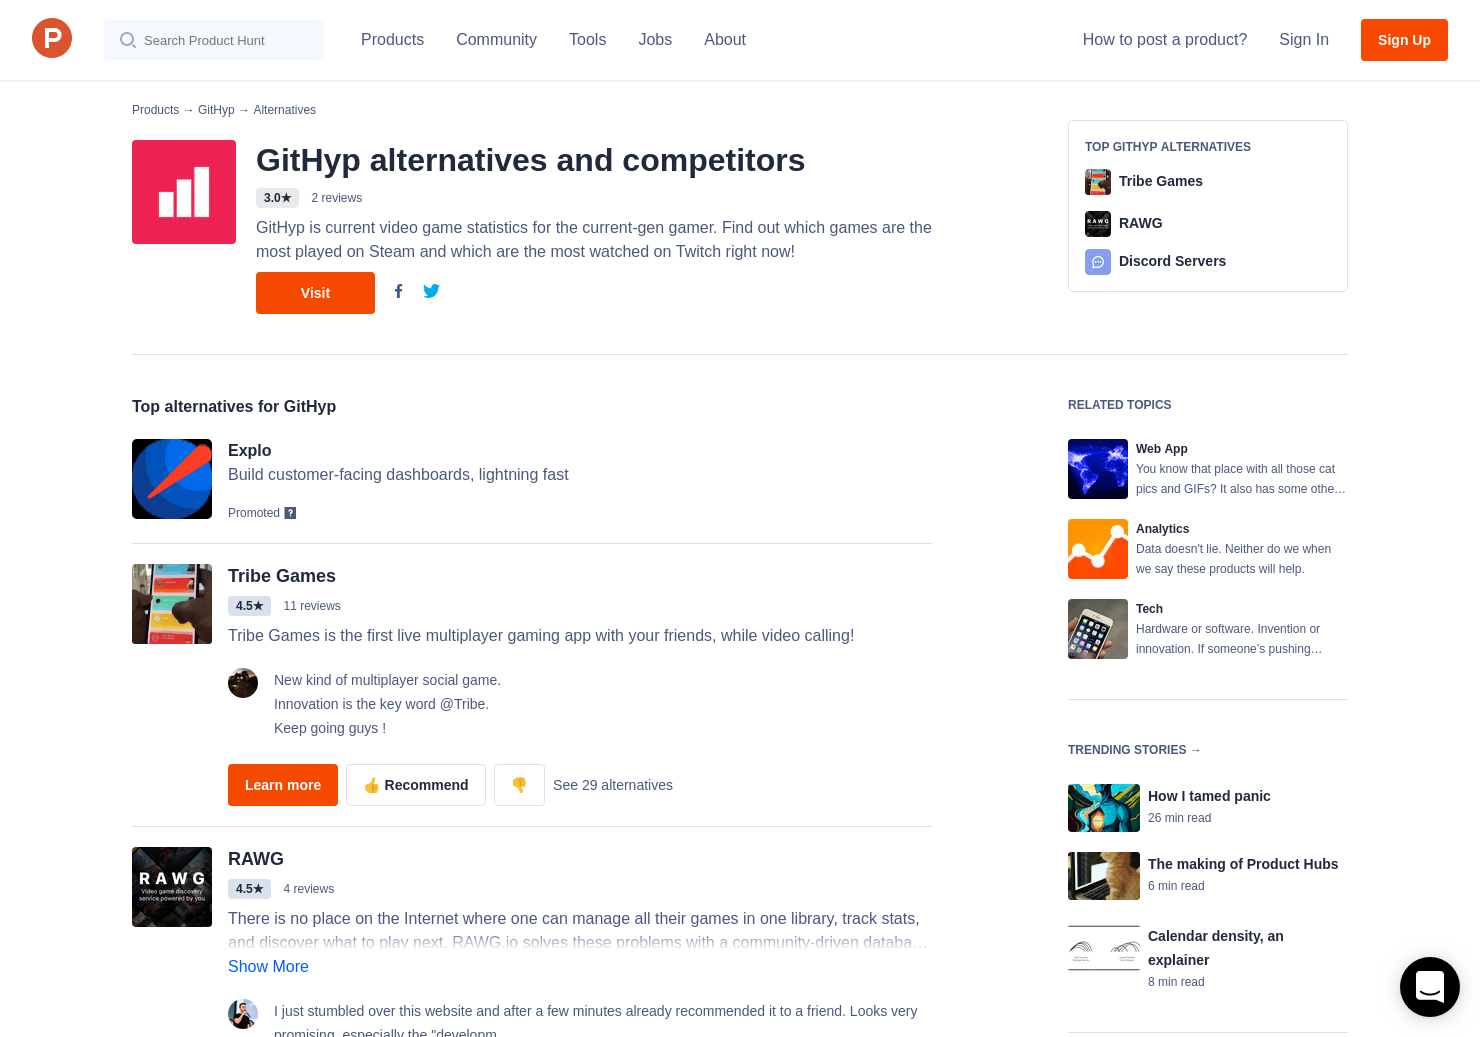 22 Alternatives to GitHyp | Product Hunt